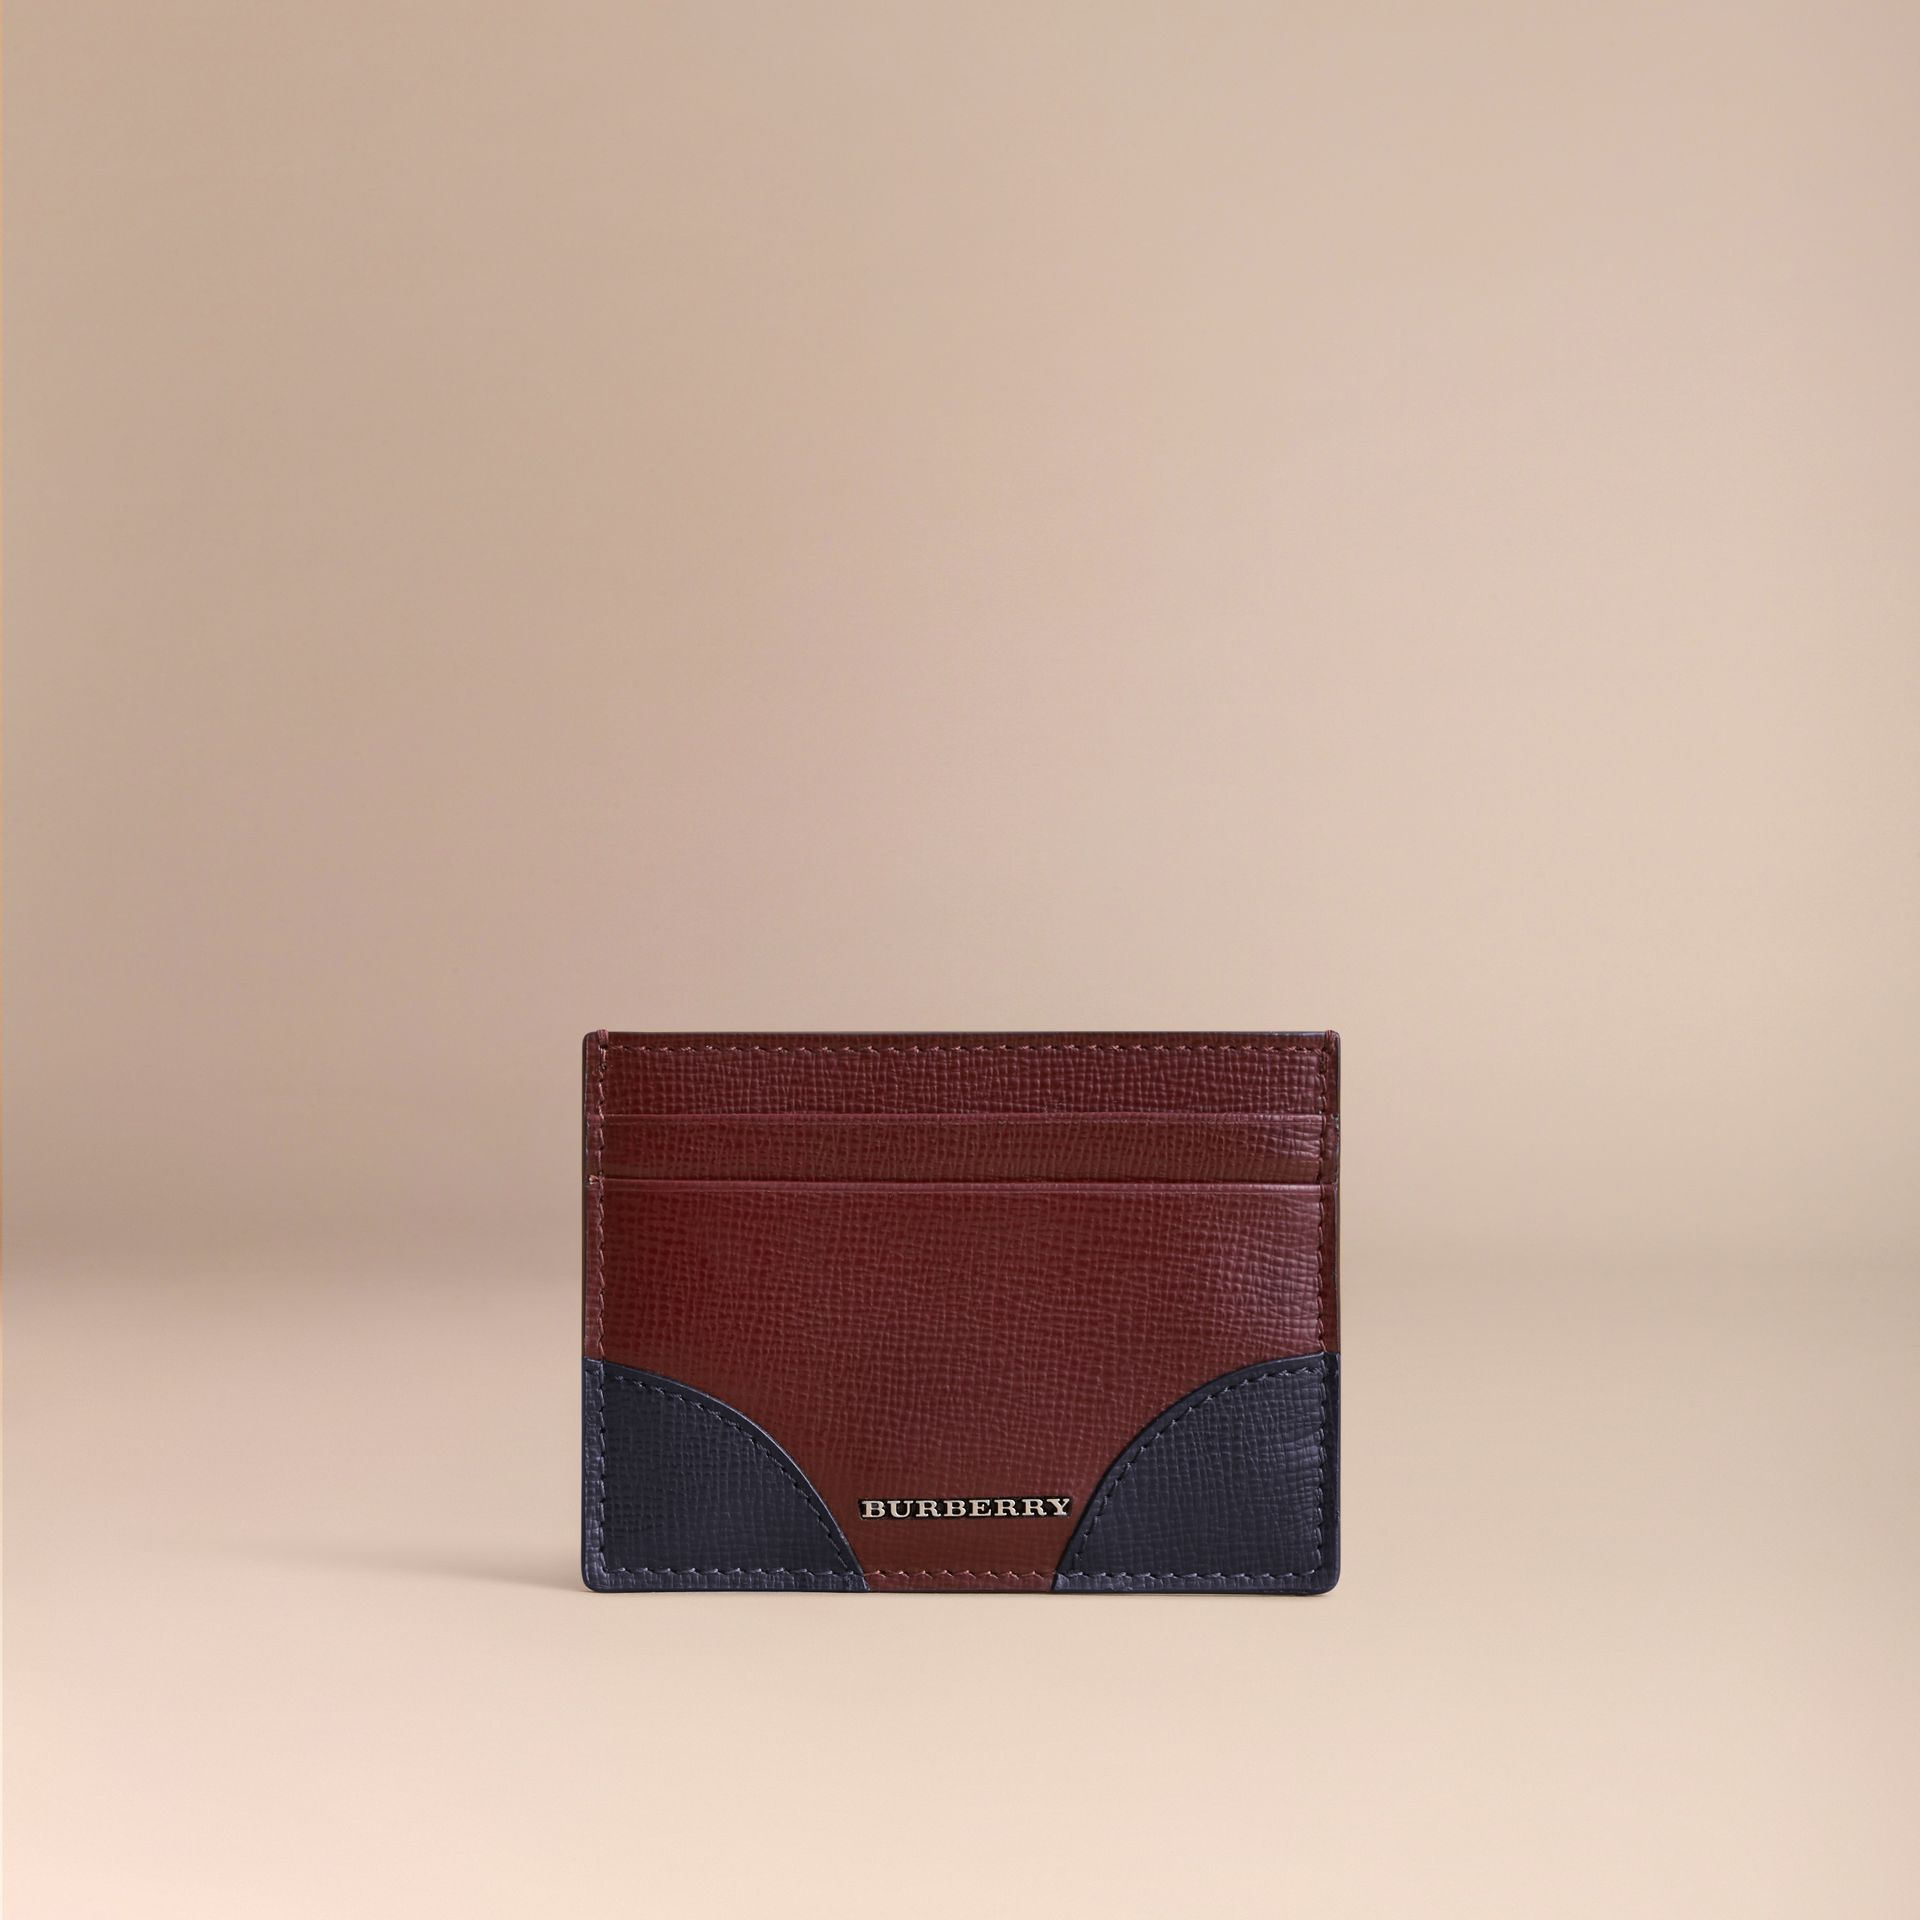 Contrast Corner London Leather Card Case in Burgundy Red - gallery image 2